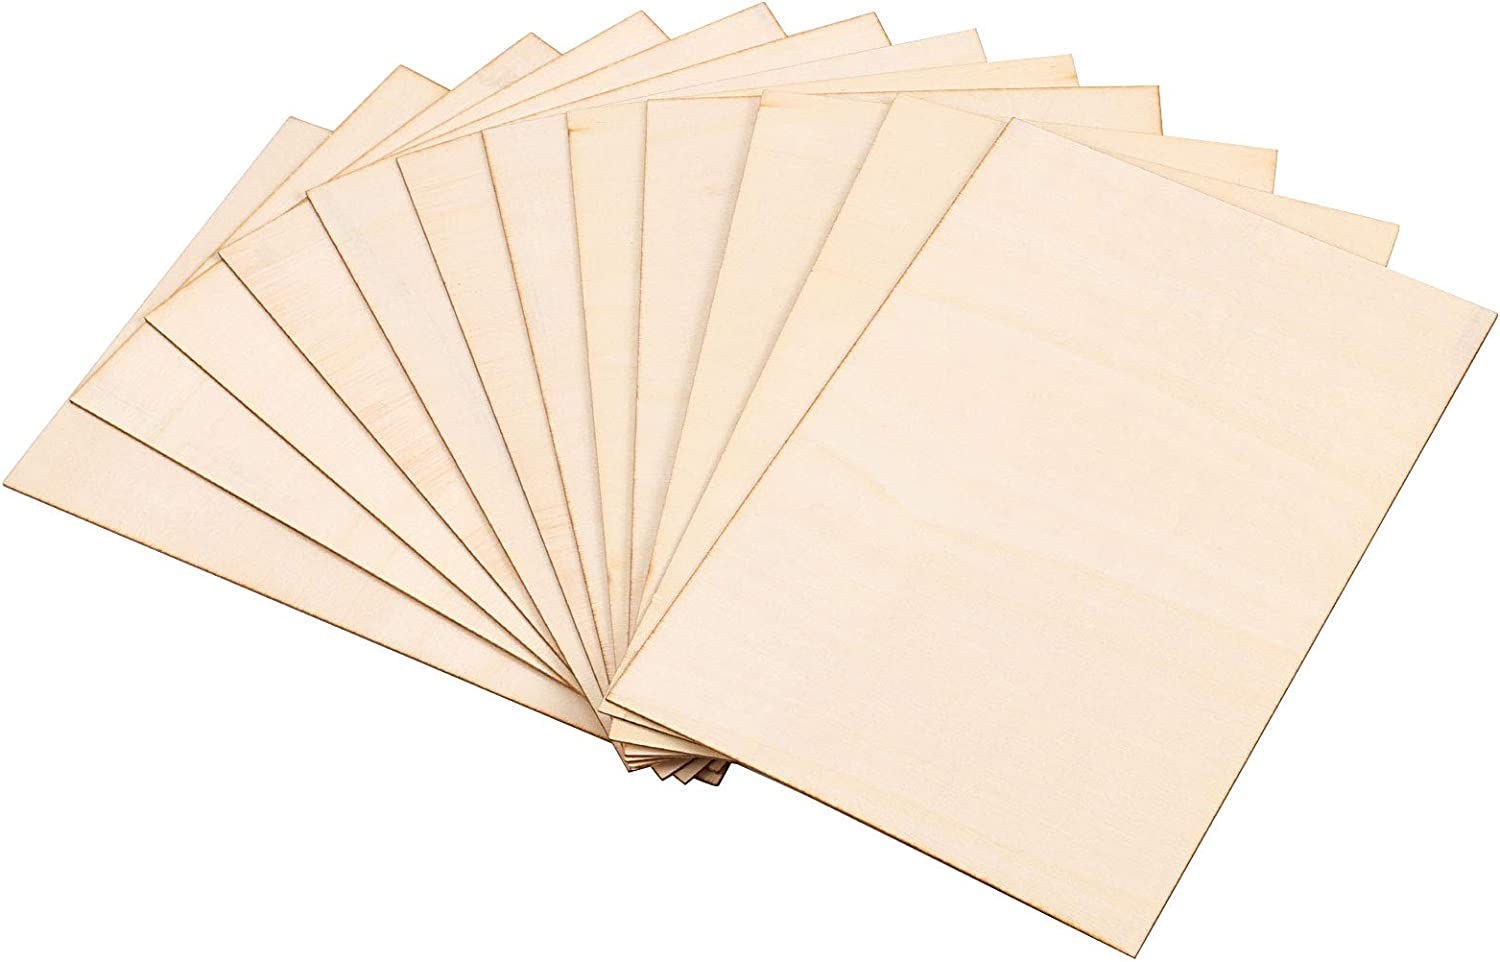 ZOENHOU Max 47% OFF 16 Pack 300 x 200 Basswood Wood Thin Boa 1.5mm Sheets Online limited product